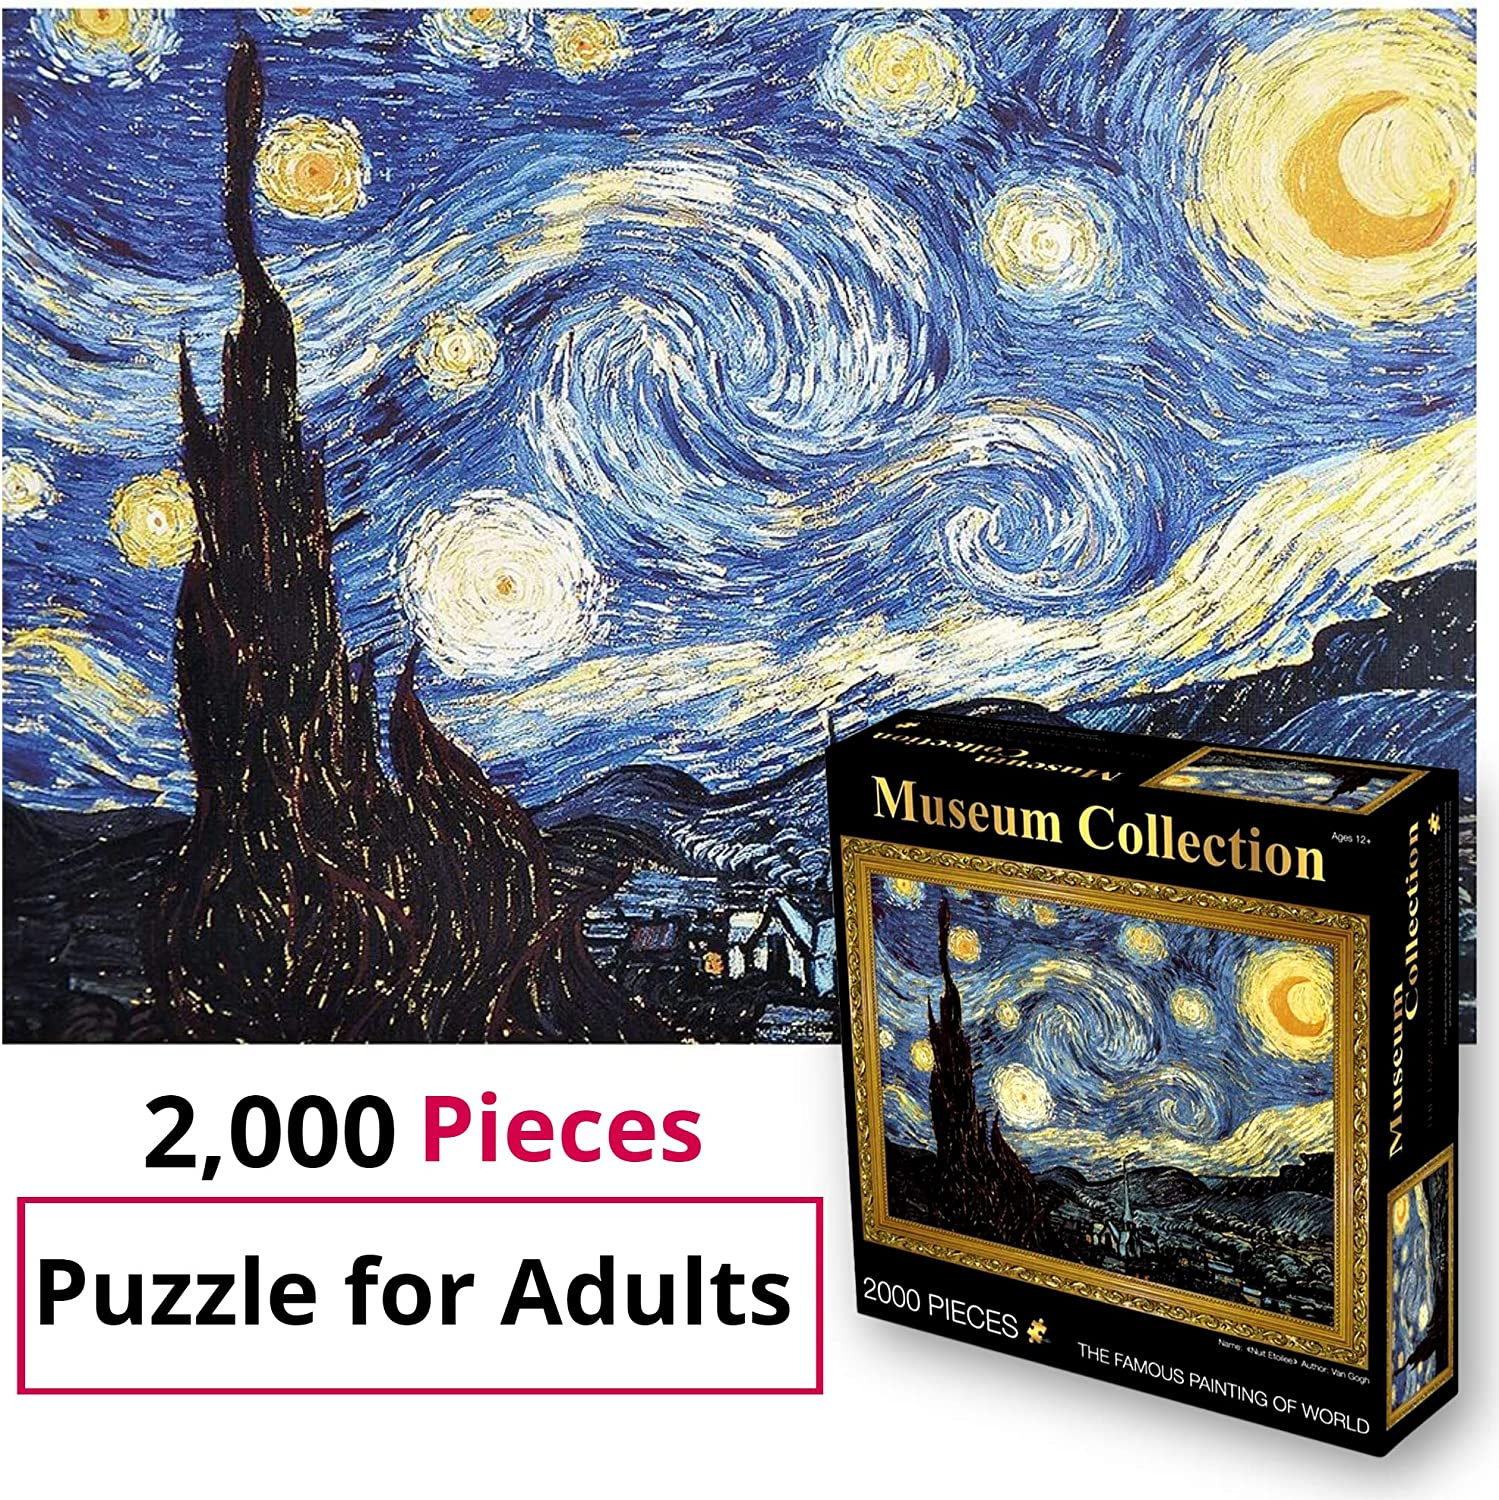 imusicat Jigsaw Puzzles for Adults 2000 Piece - Non-Toxic, Starry Night Jigsaw Van Gogh Colorful Oil Painting, for Adult, Kids, Children, Boy, Teens, Grandparents, Senior Adults, Elderly Adults